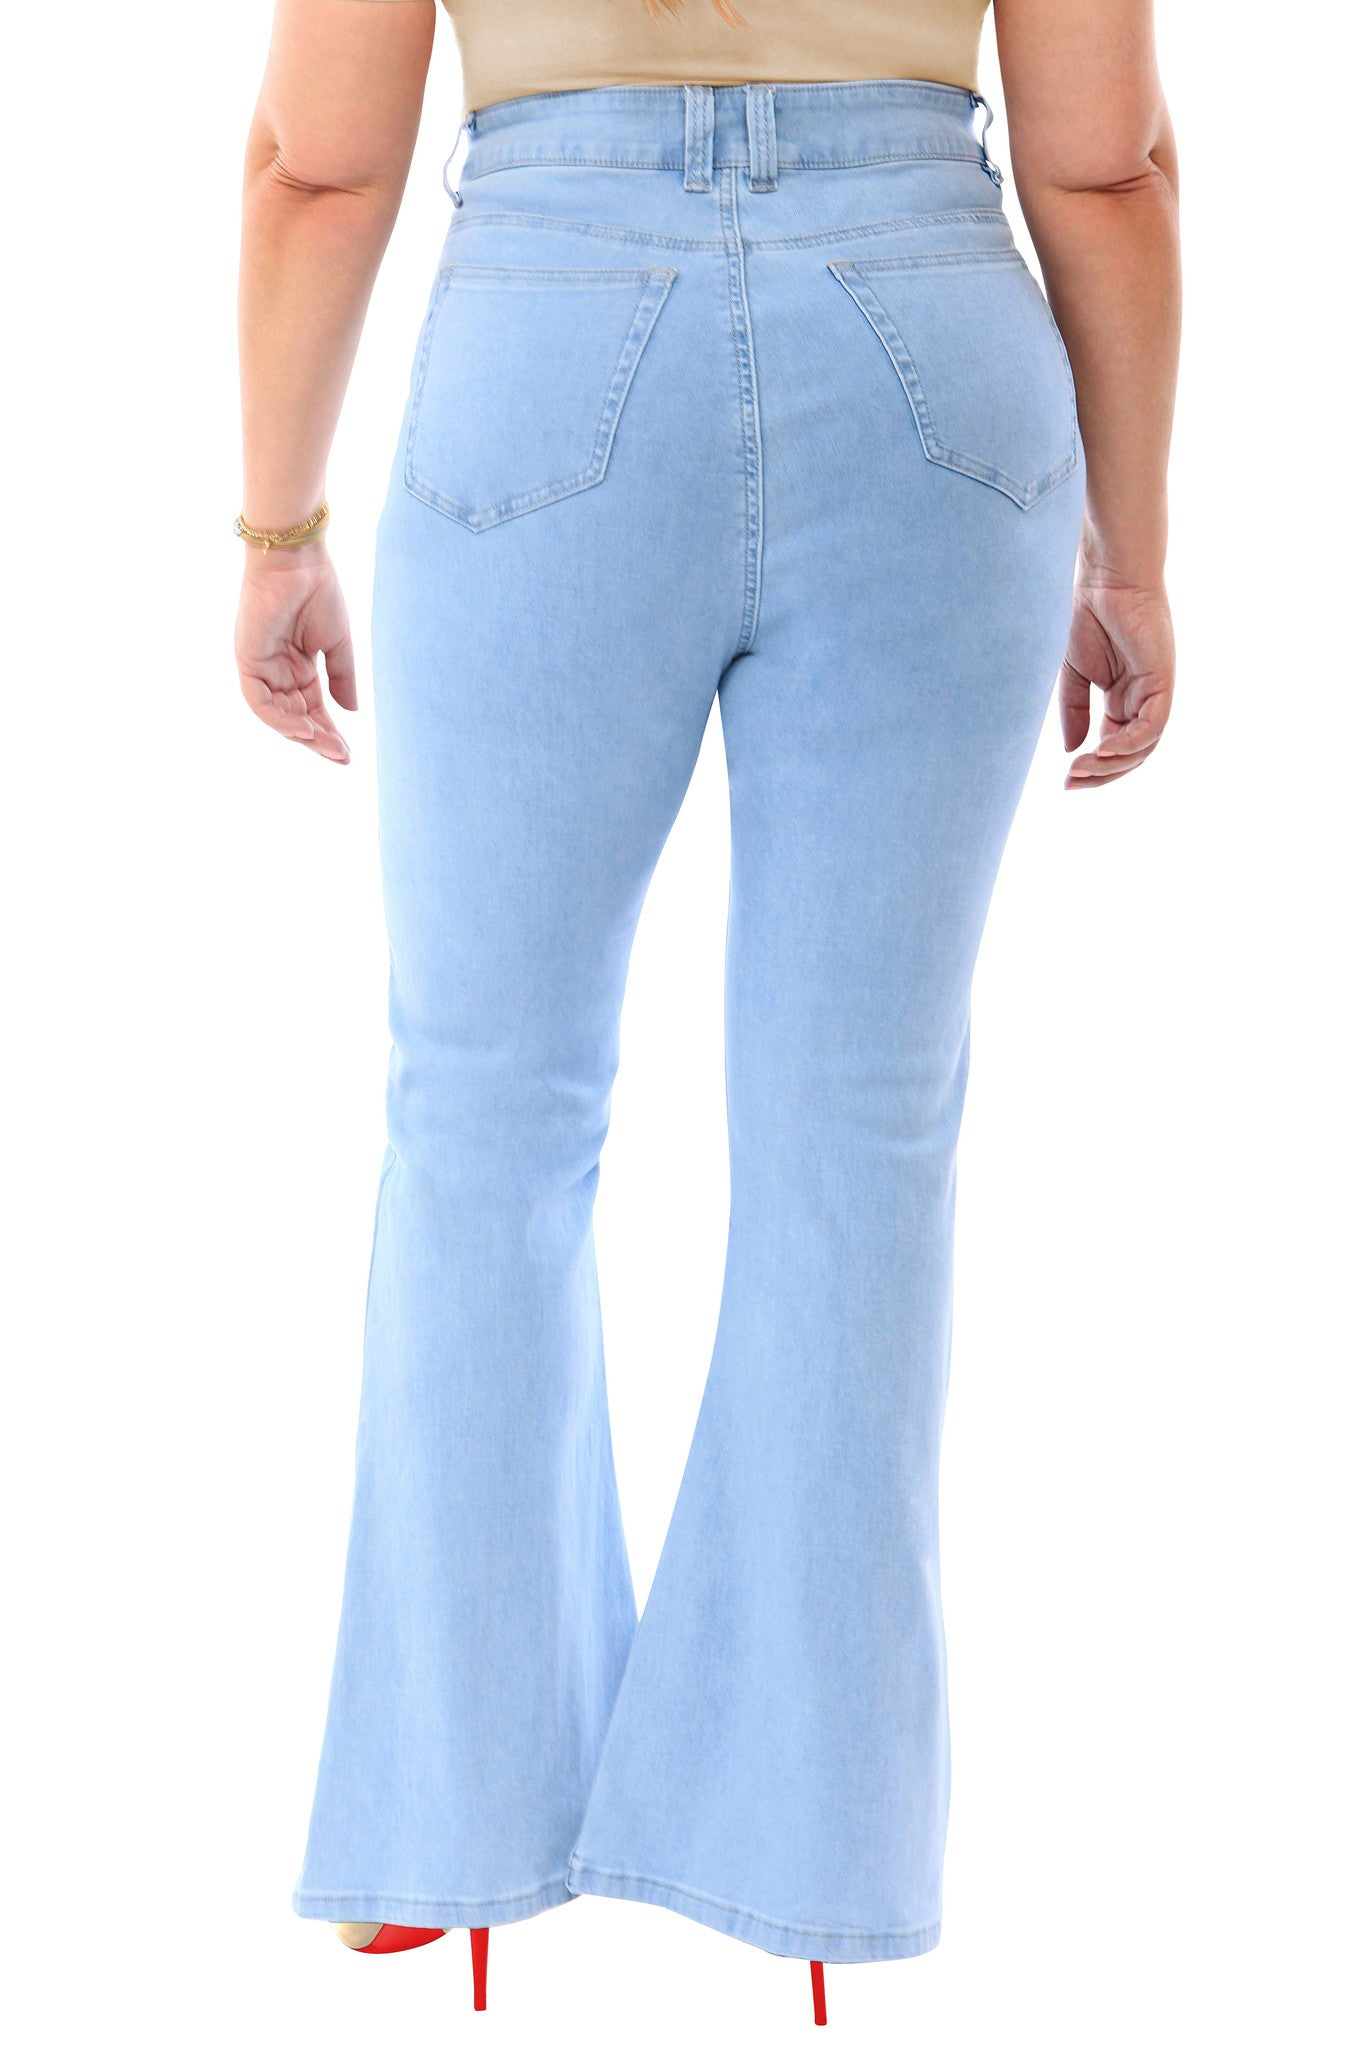 360 Stretch High Rise Flea Market Flare Jeans in Sky Bleach Blue ... a63bef1b26